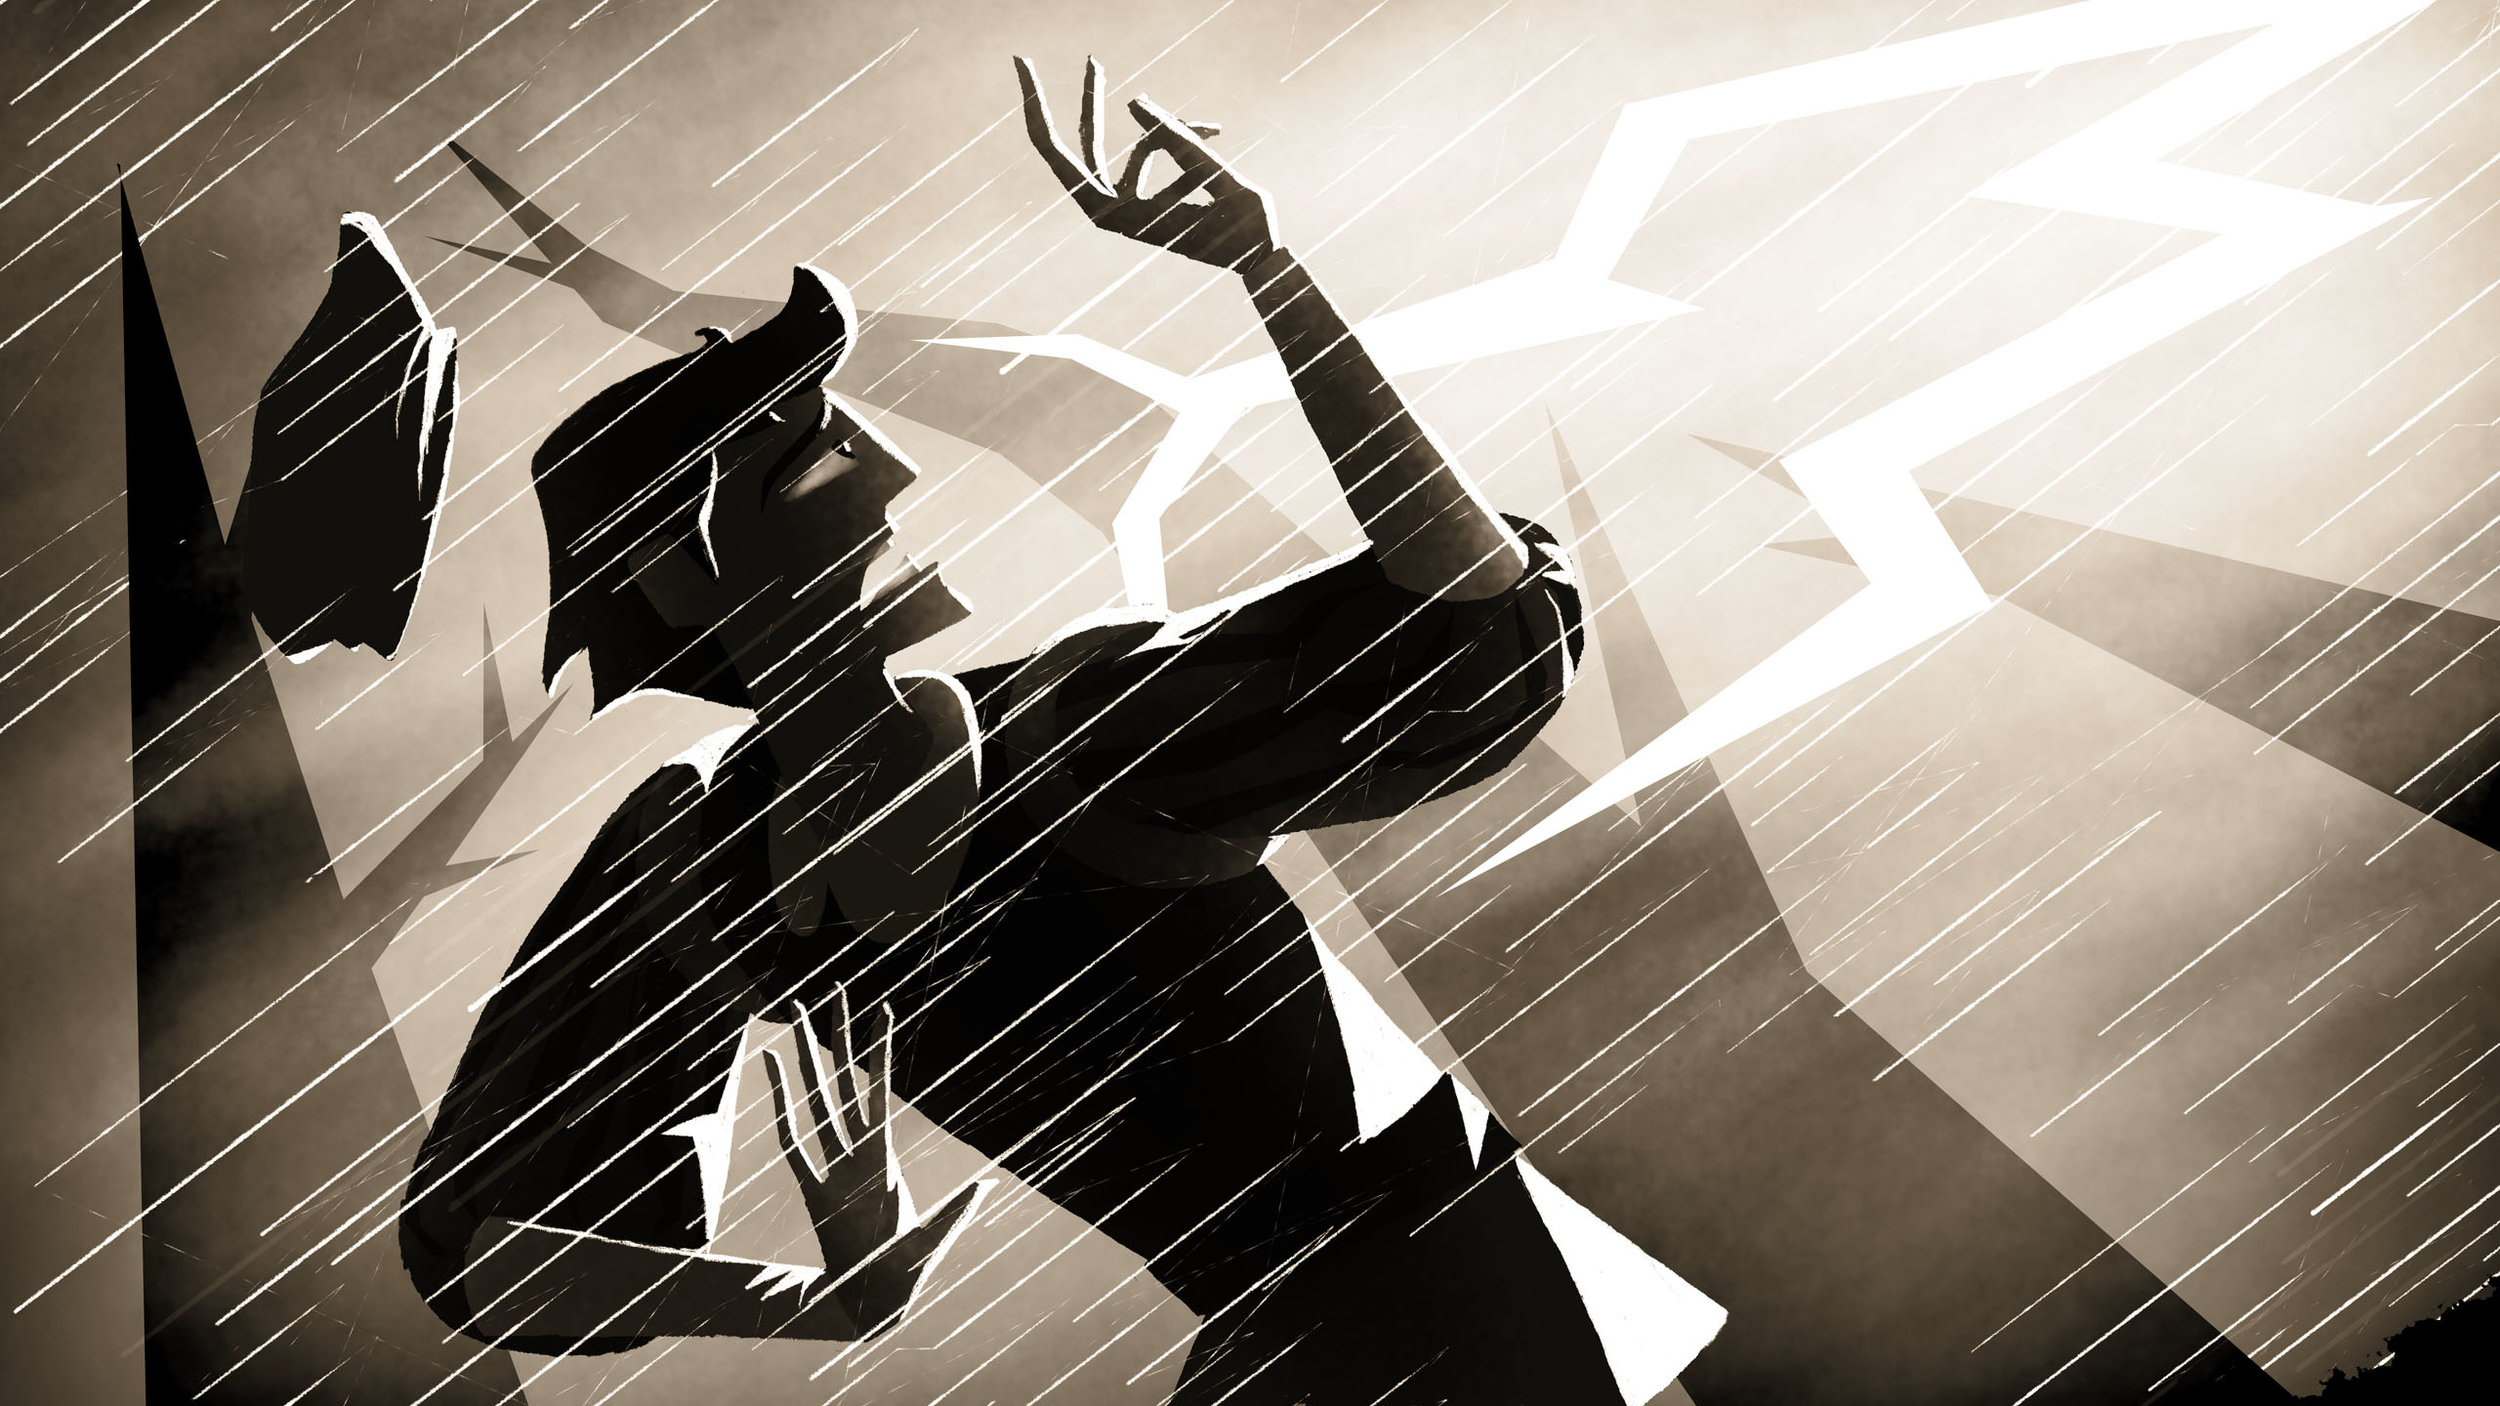 Illustration_concept_3_luther thunderstorm.jpg